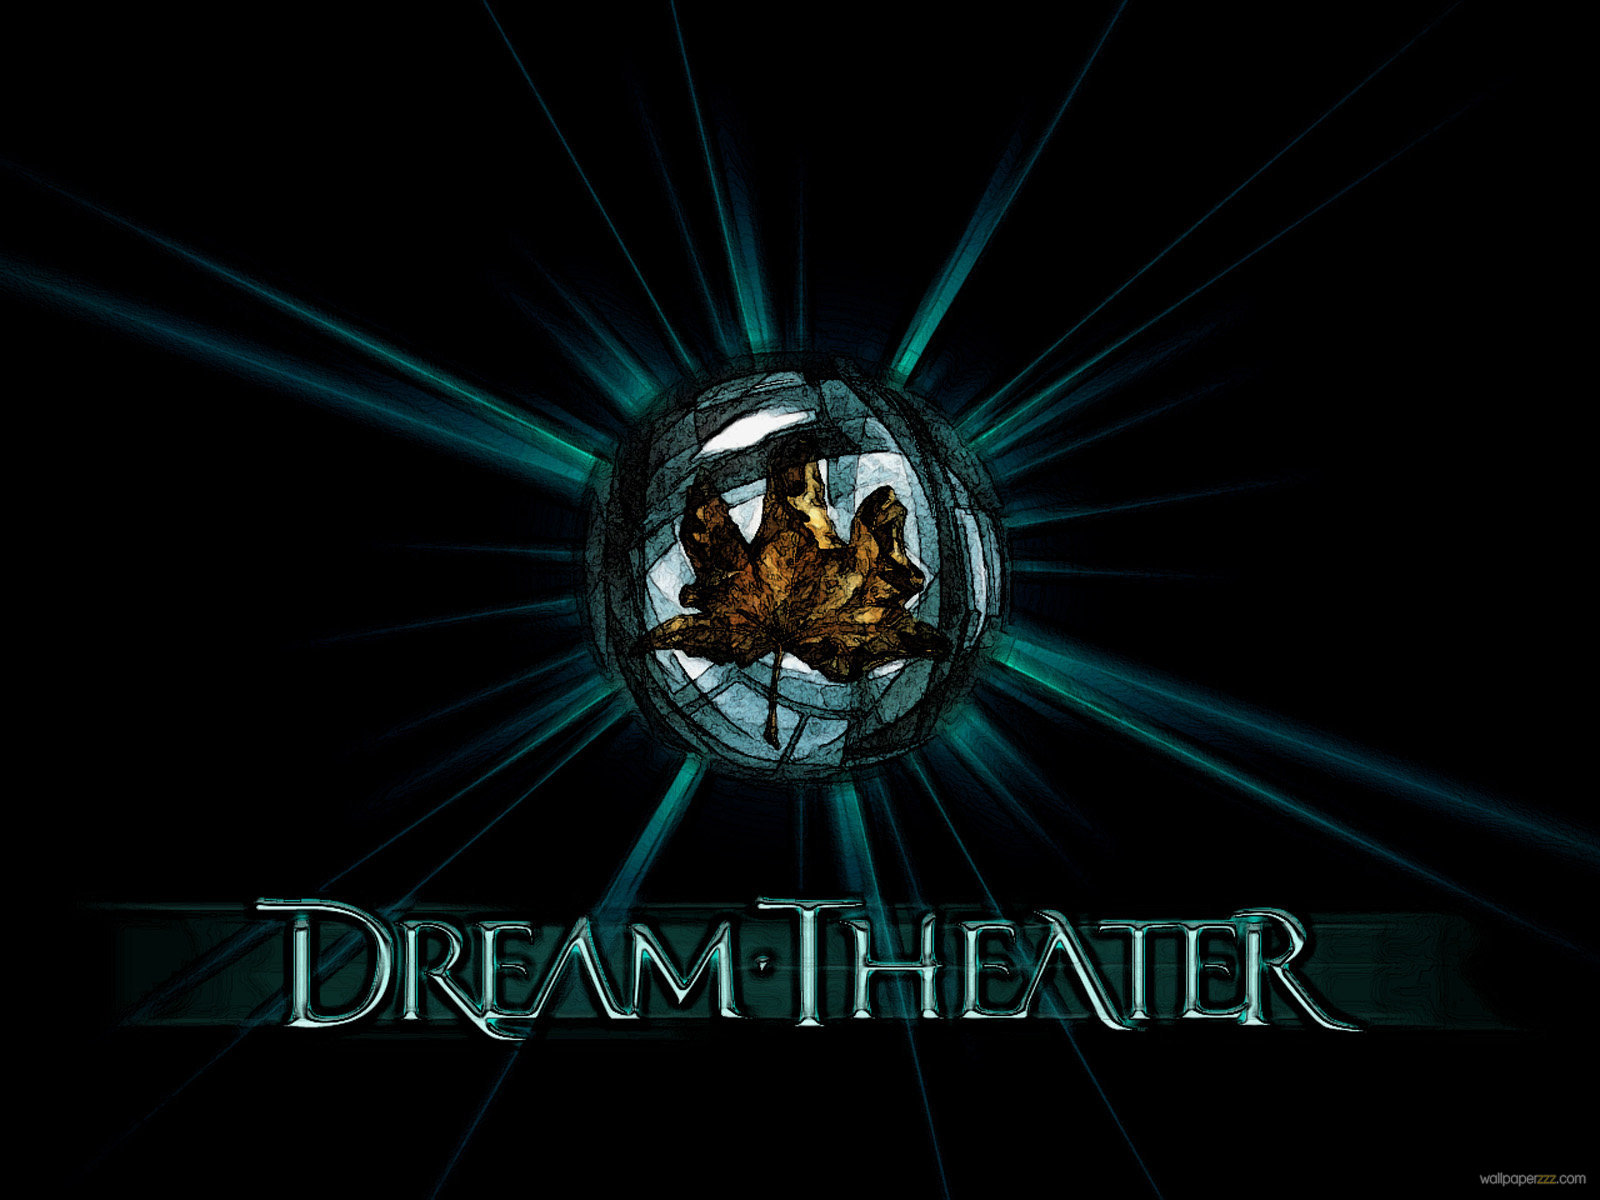 Hd Wallpapers Images: Dream Theater Wallpaper HD